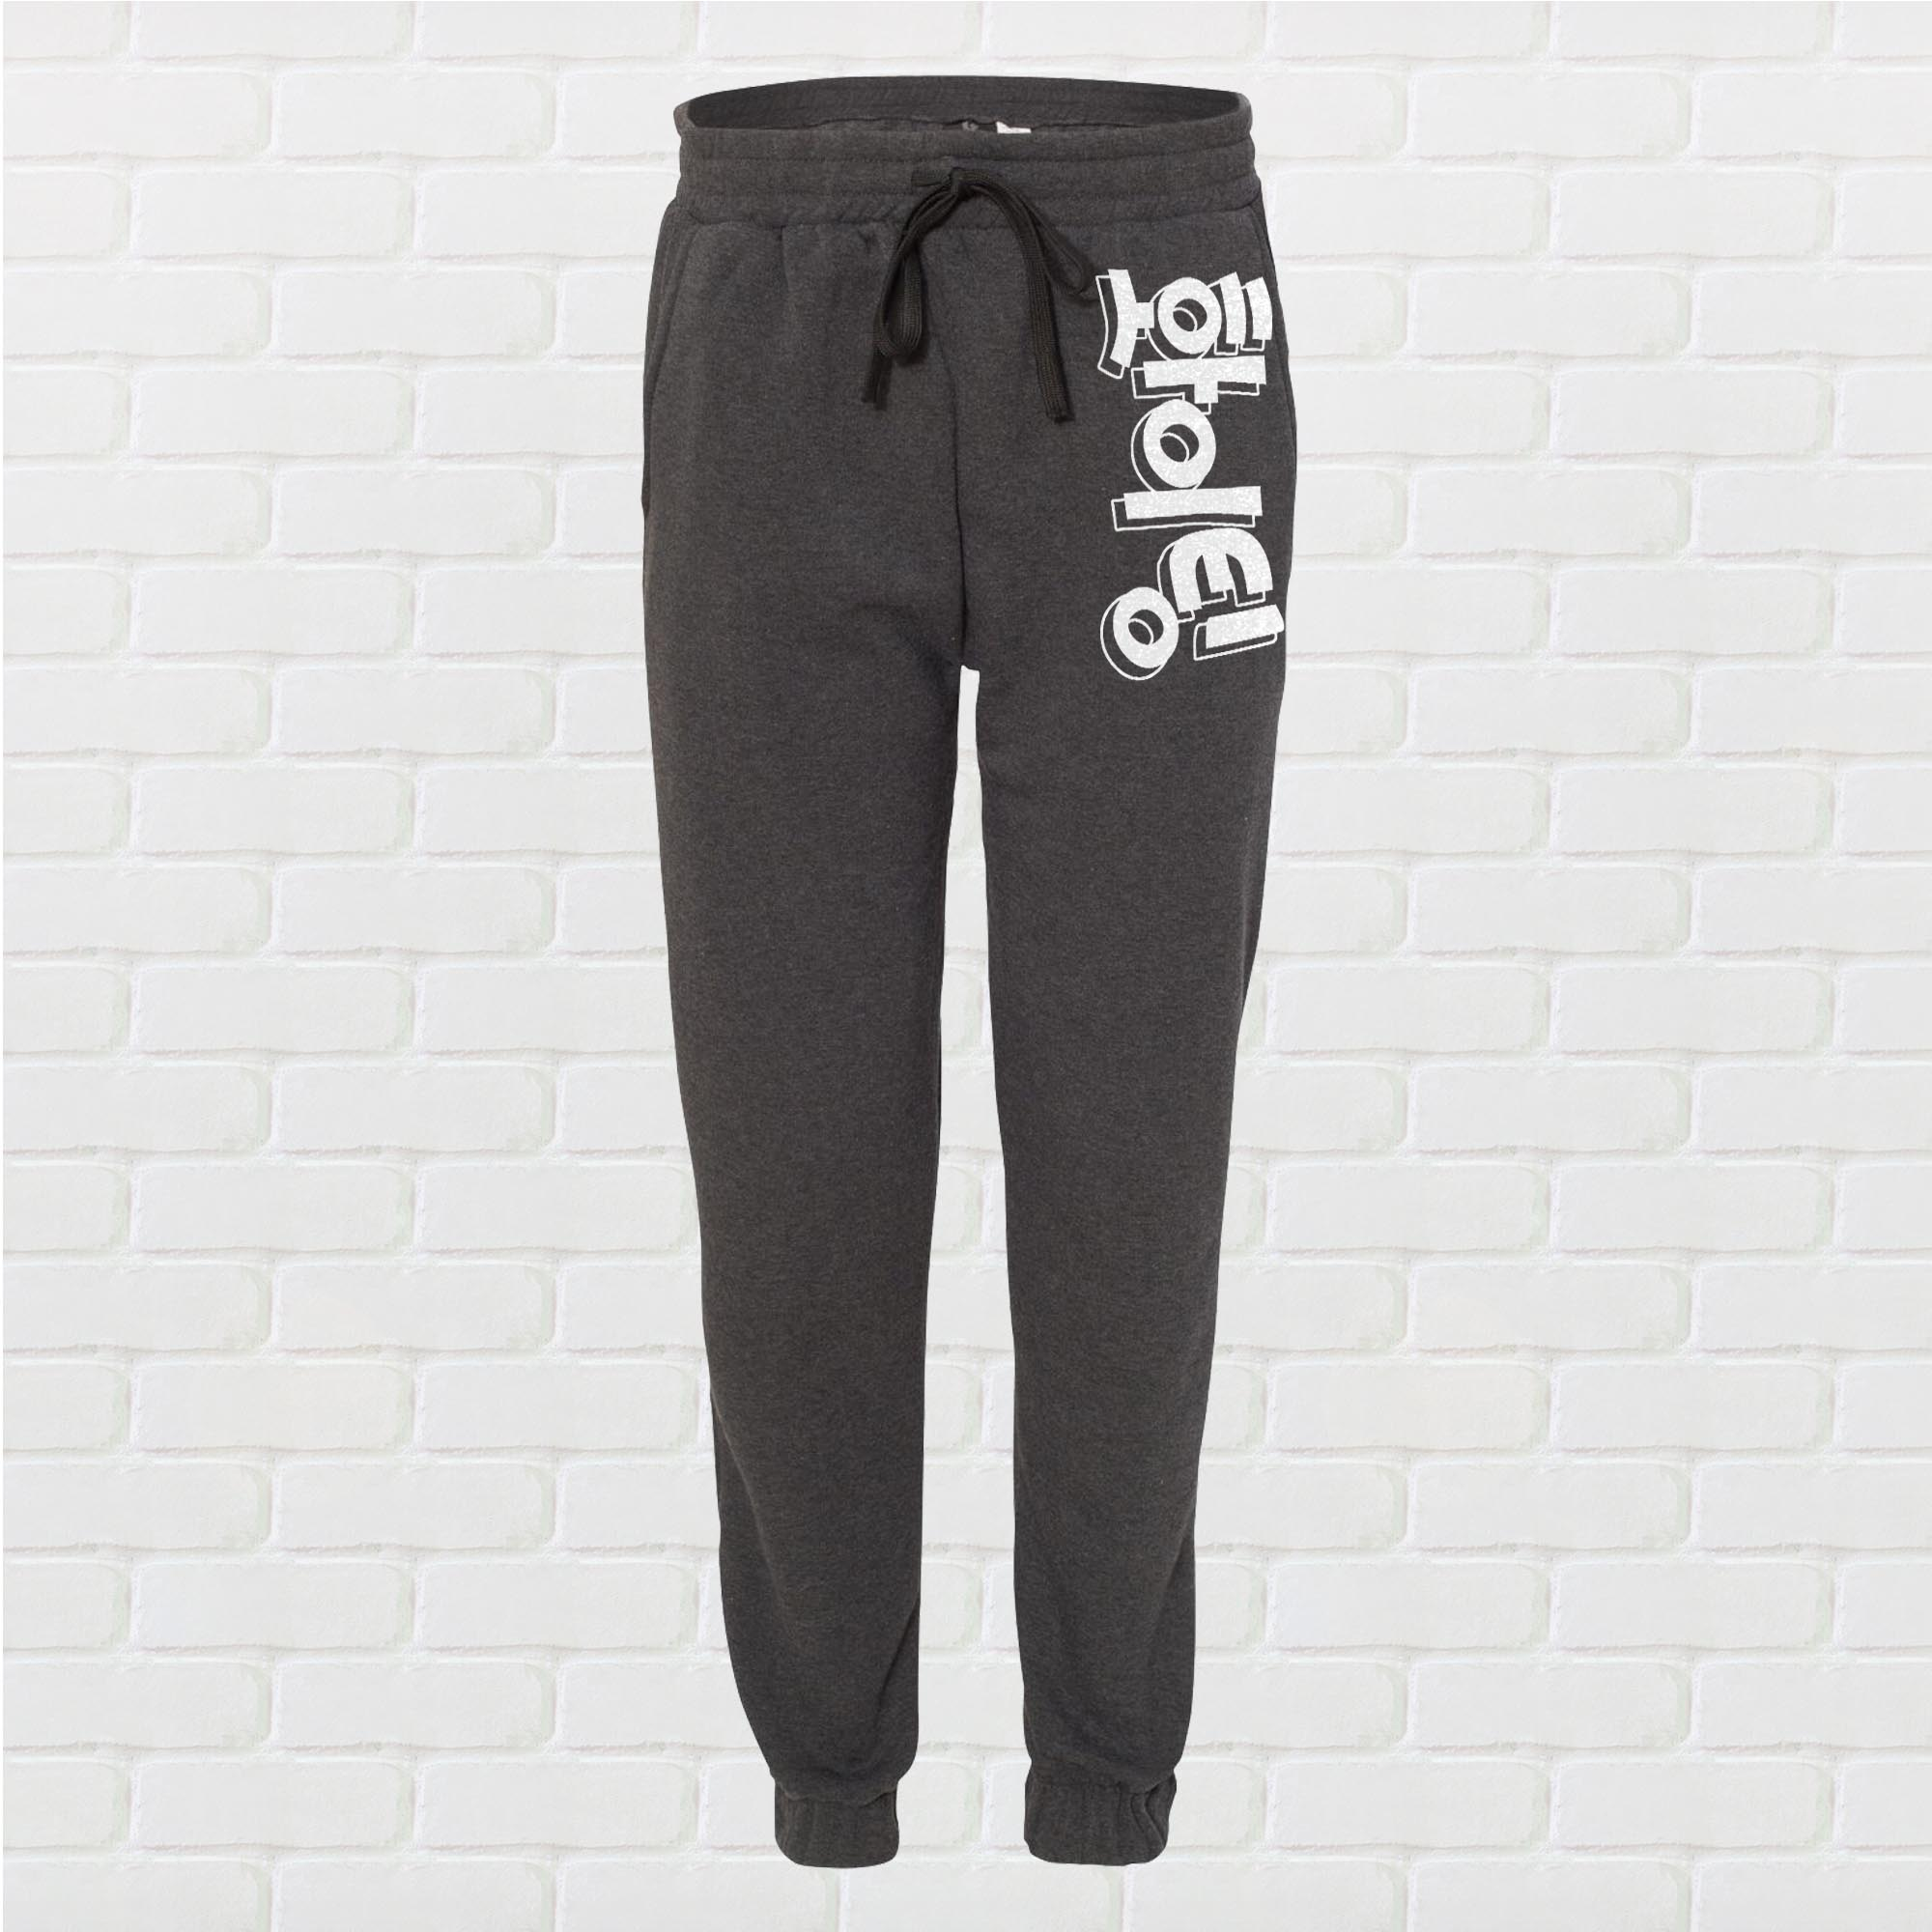 Fighting! Korean Unisex Jogger Pants - Charcoal Grey